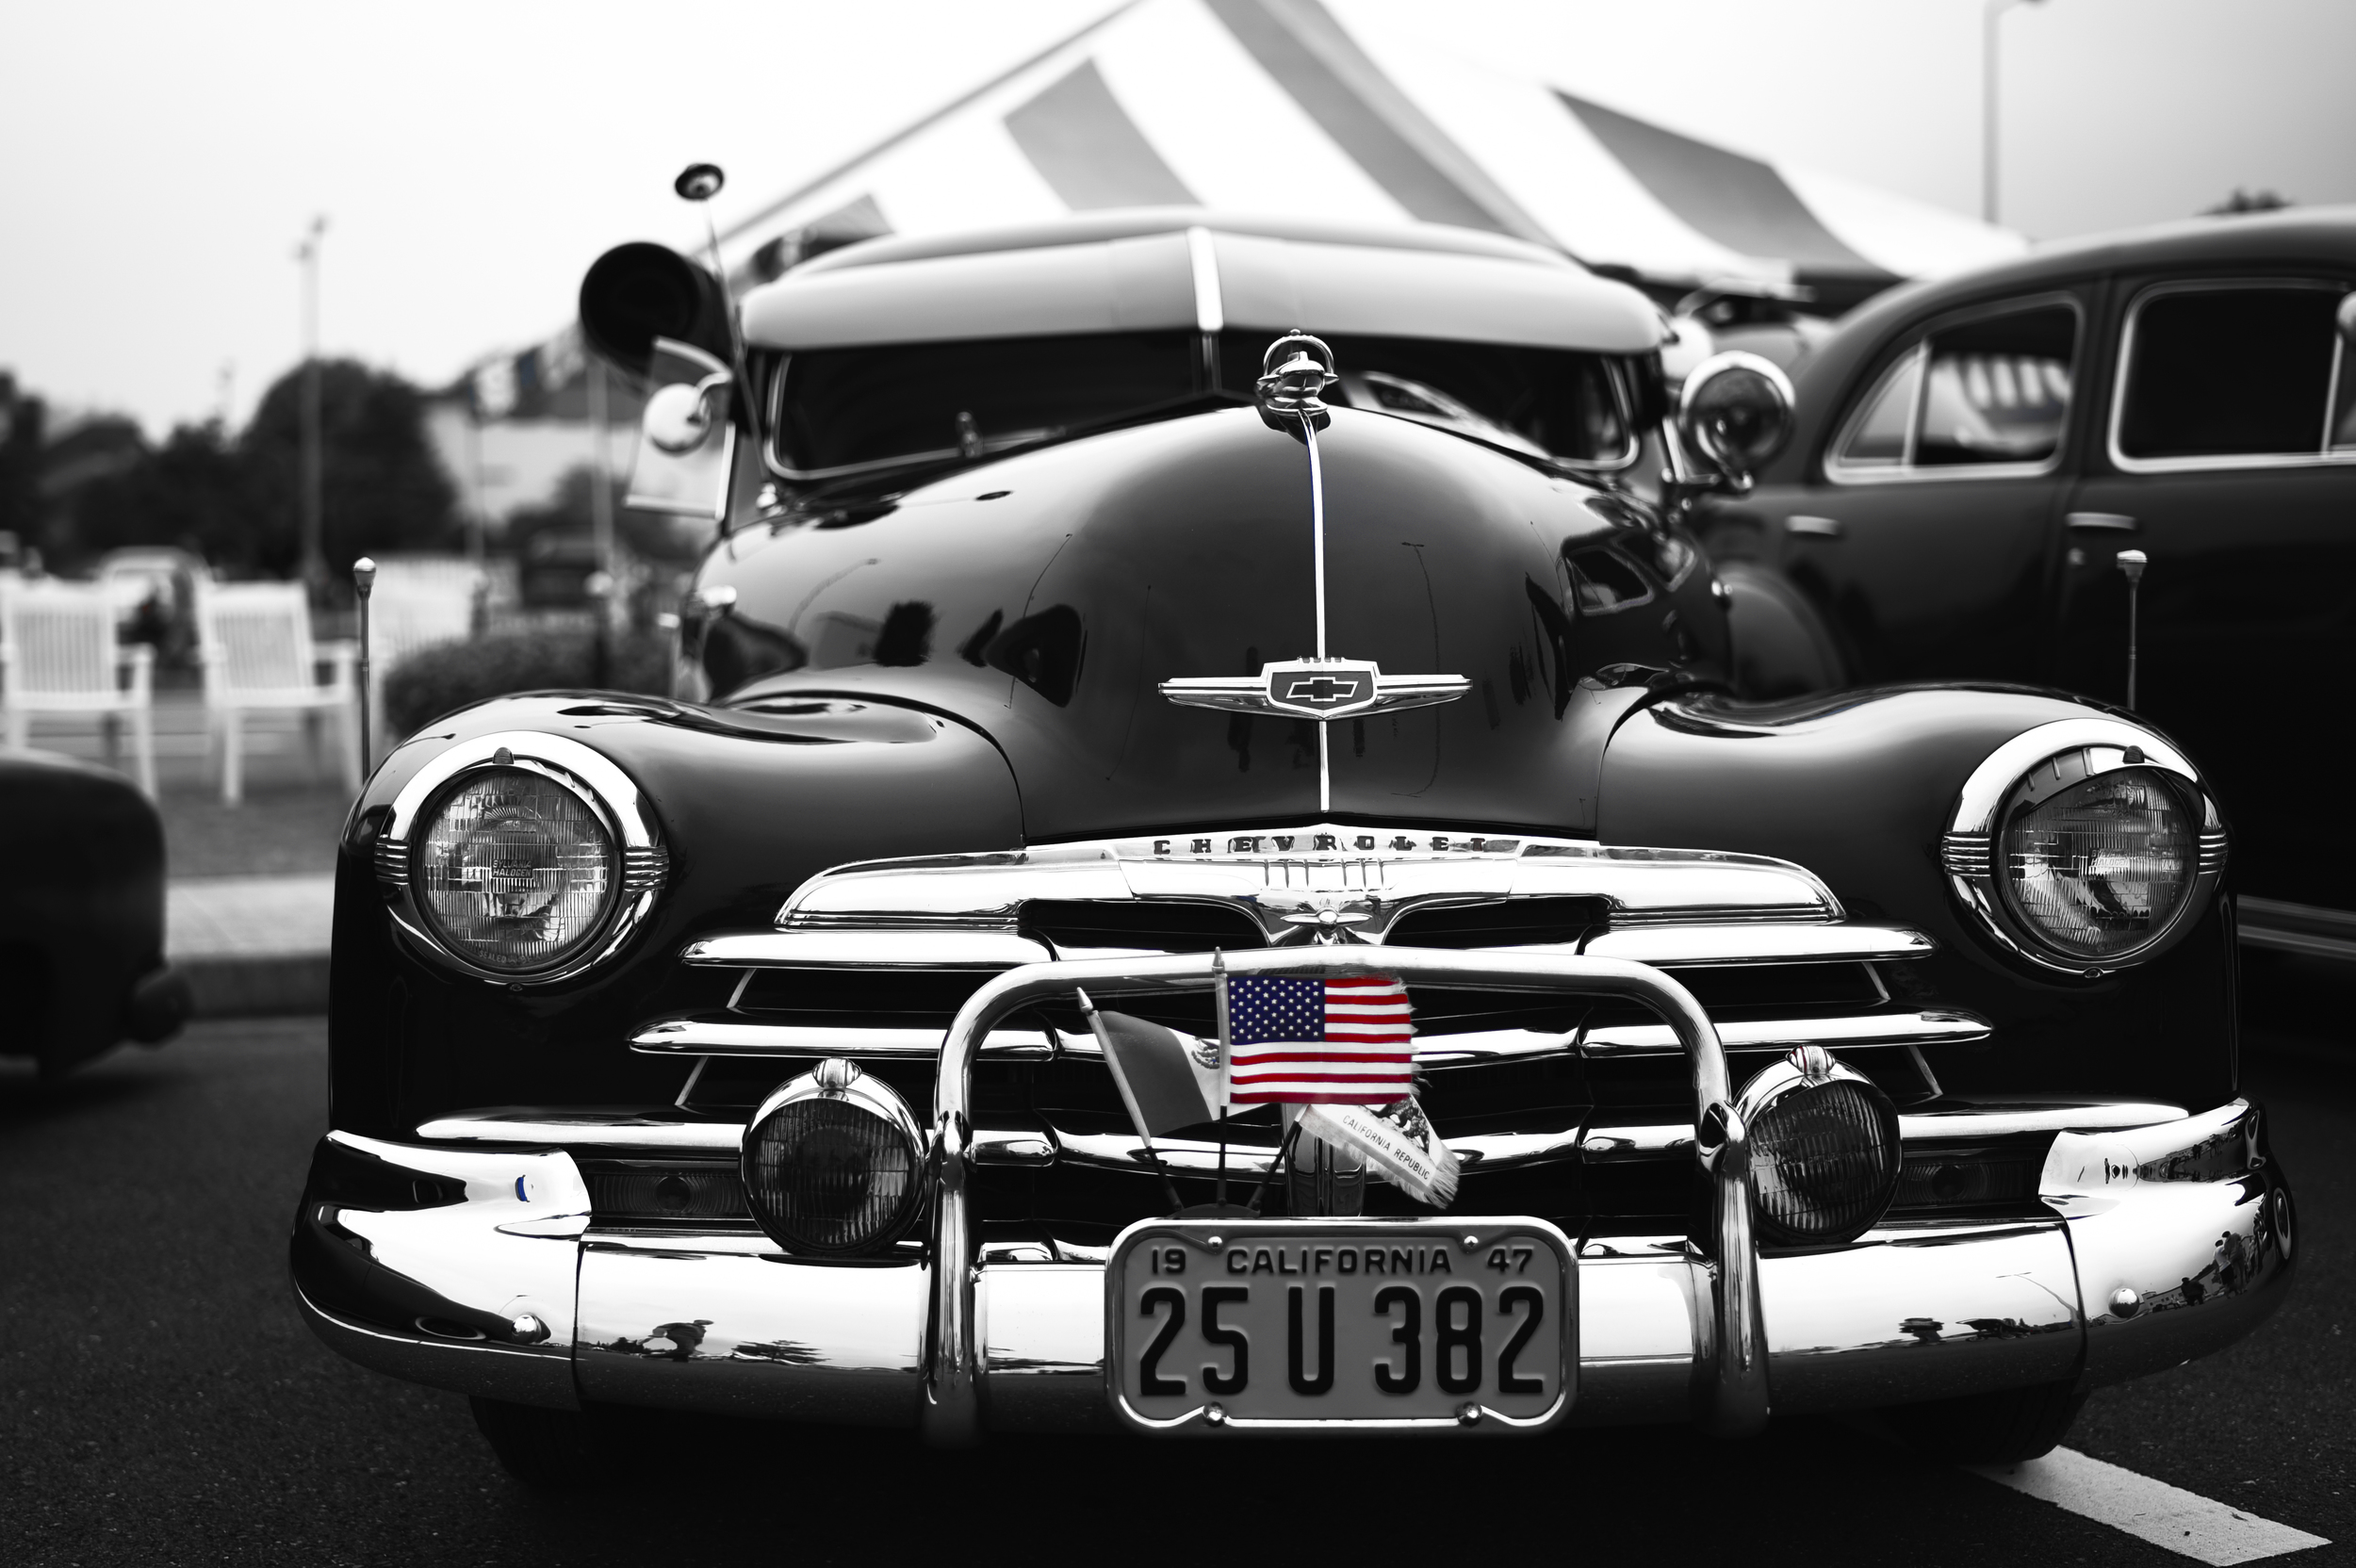 An American flag sticks out of the license plate of a Chevrolet during the car show portion of Celebrate America at Yokota Air Base, Japan, July 2, 2015. Celebrate America brings the spice of traditional Independence Day celebrations to military members stationed overseas at Yokota. (Air Force photo graphic by Senior Airman Michael Washburn/Released)